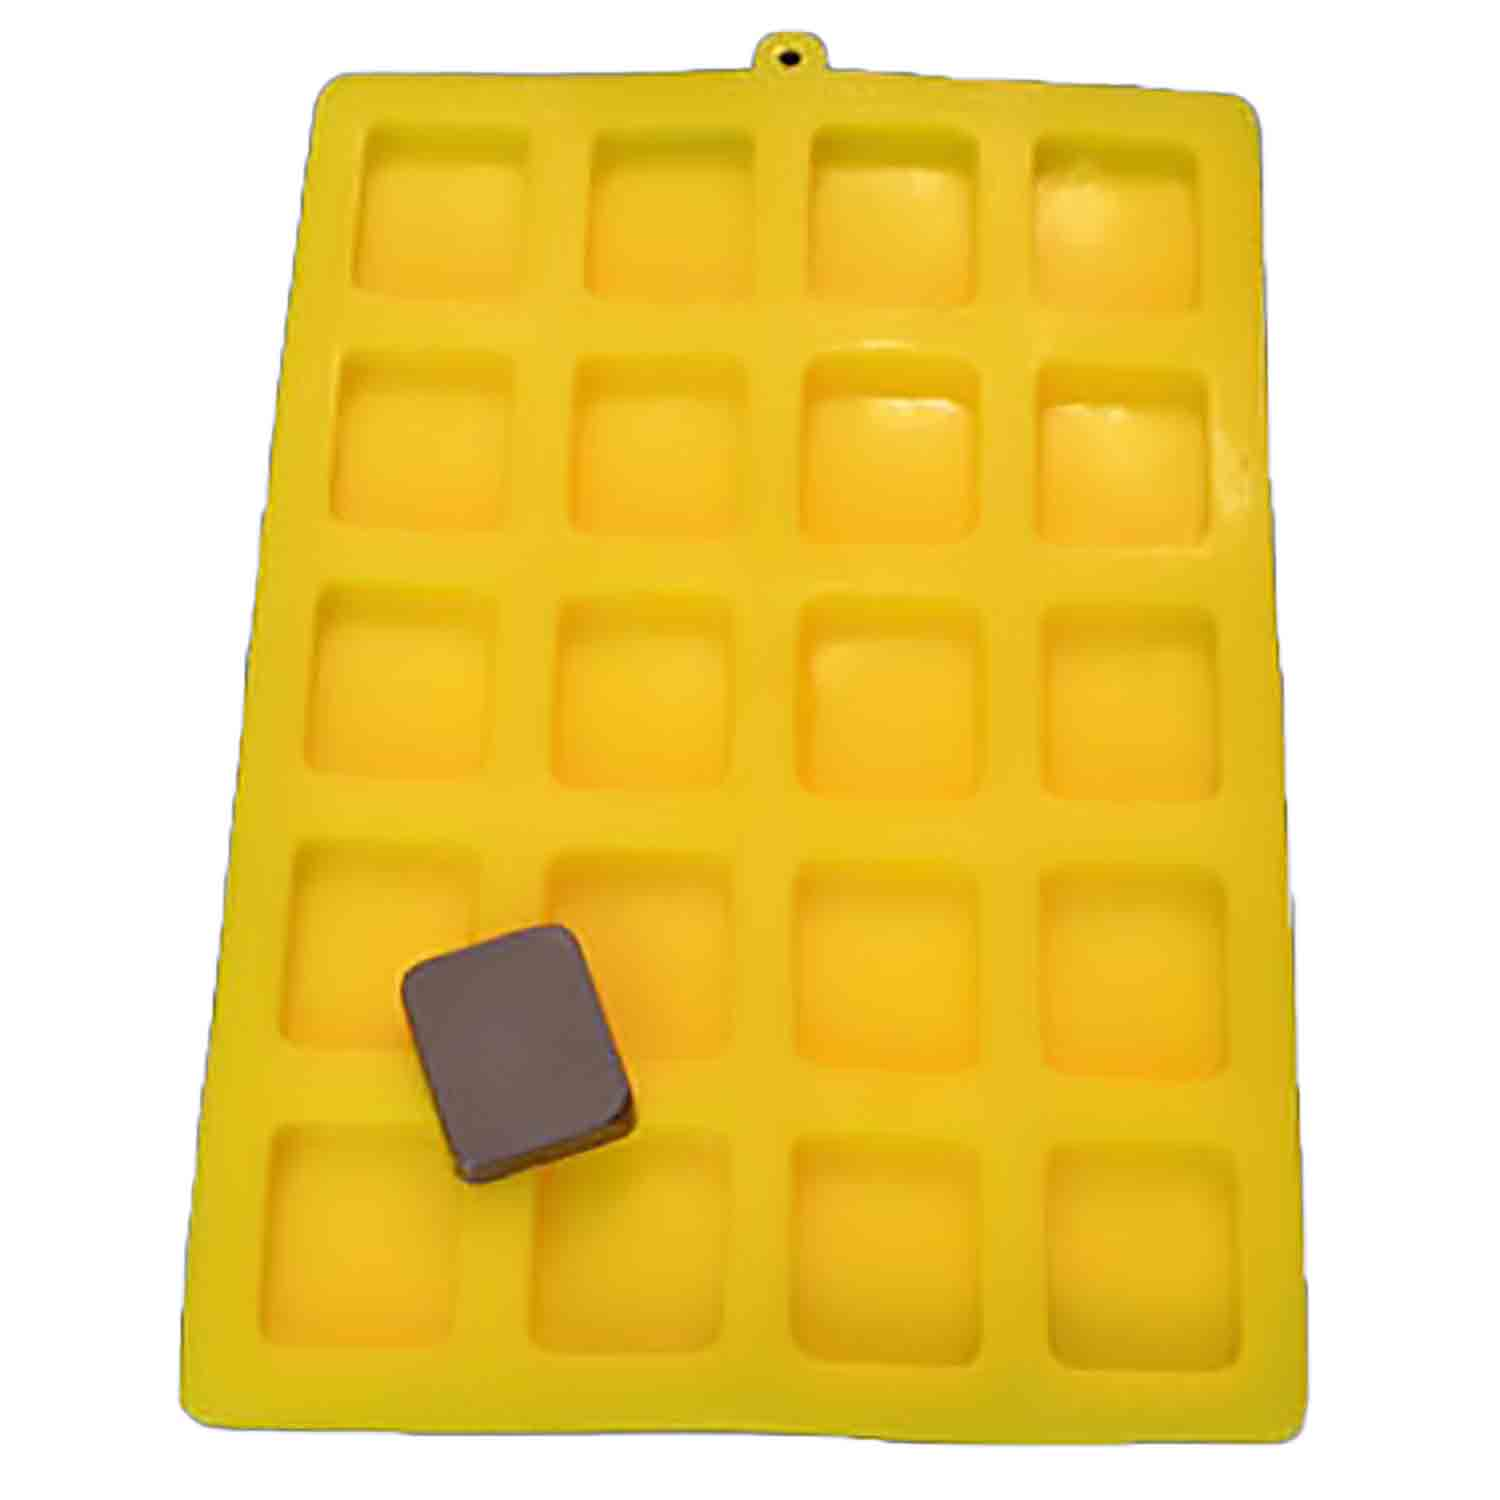 Rectangle Flexible Rubber Candy Mold